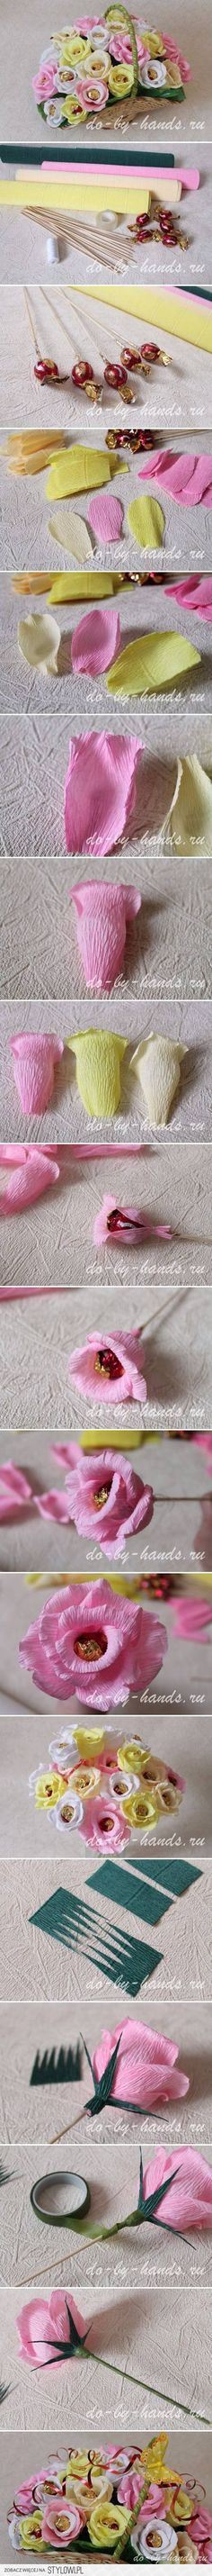 DIY Paper Roses with Candy DIY Projects | UsefulDIY.com na Stylowi.pl